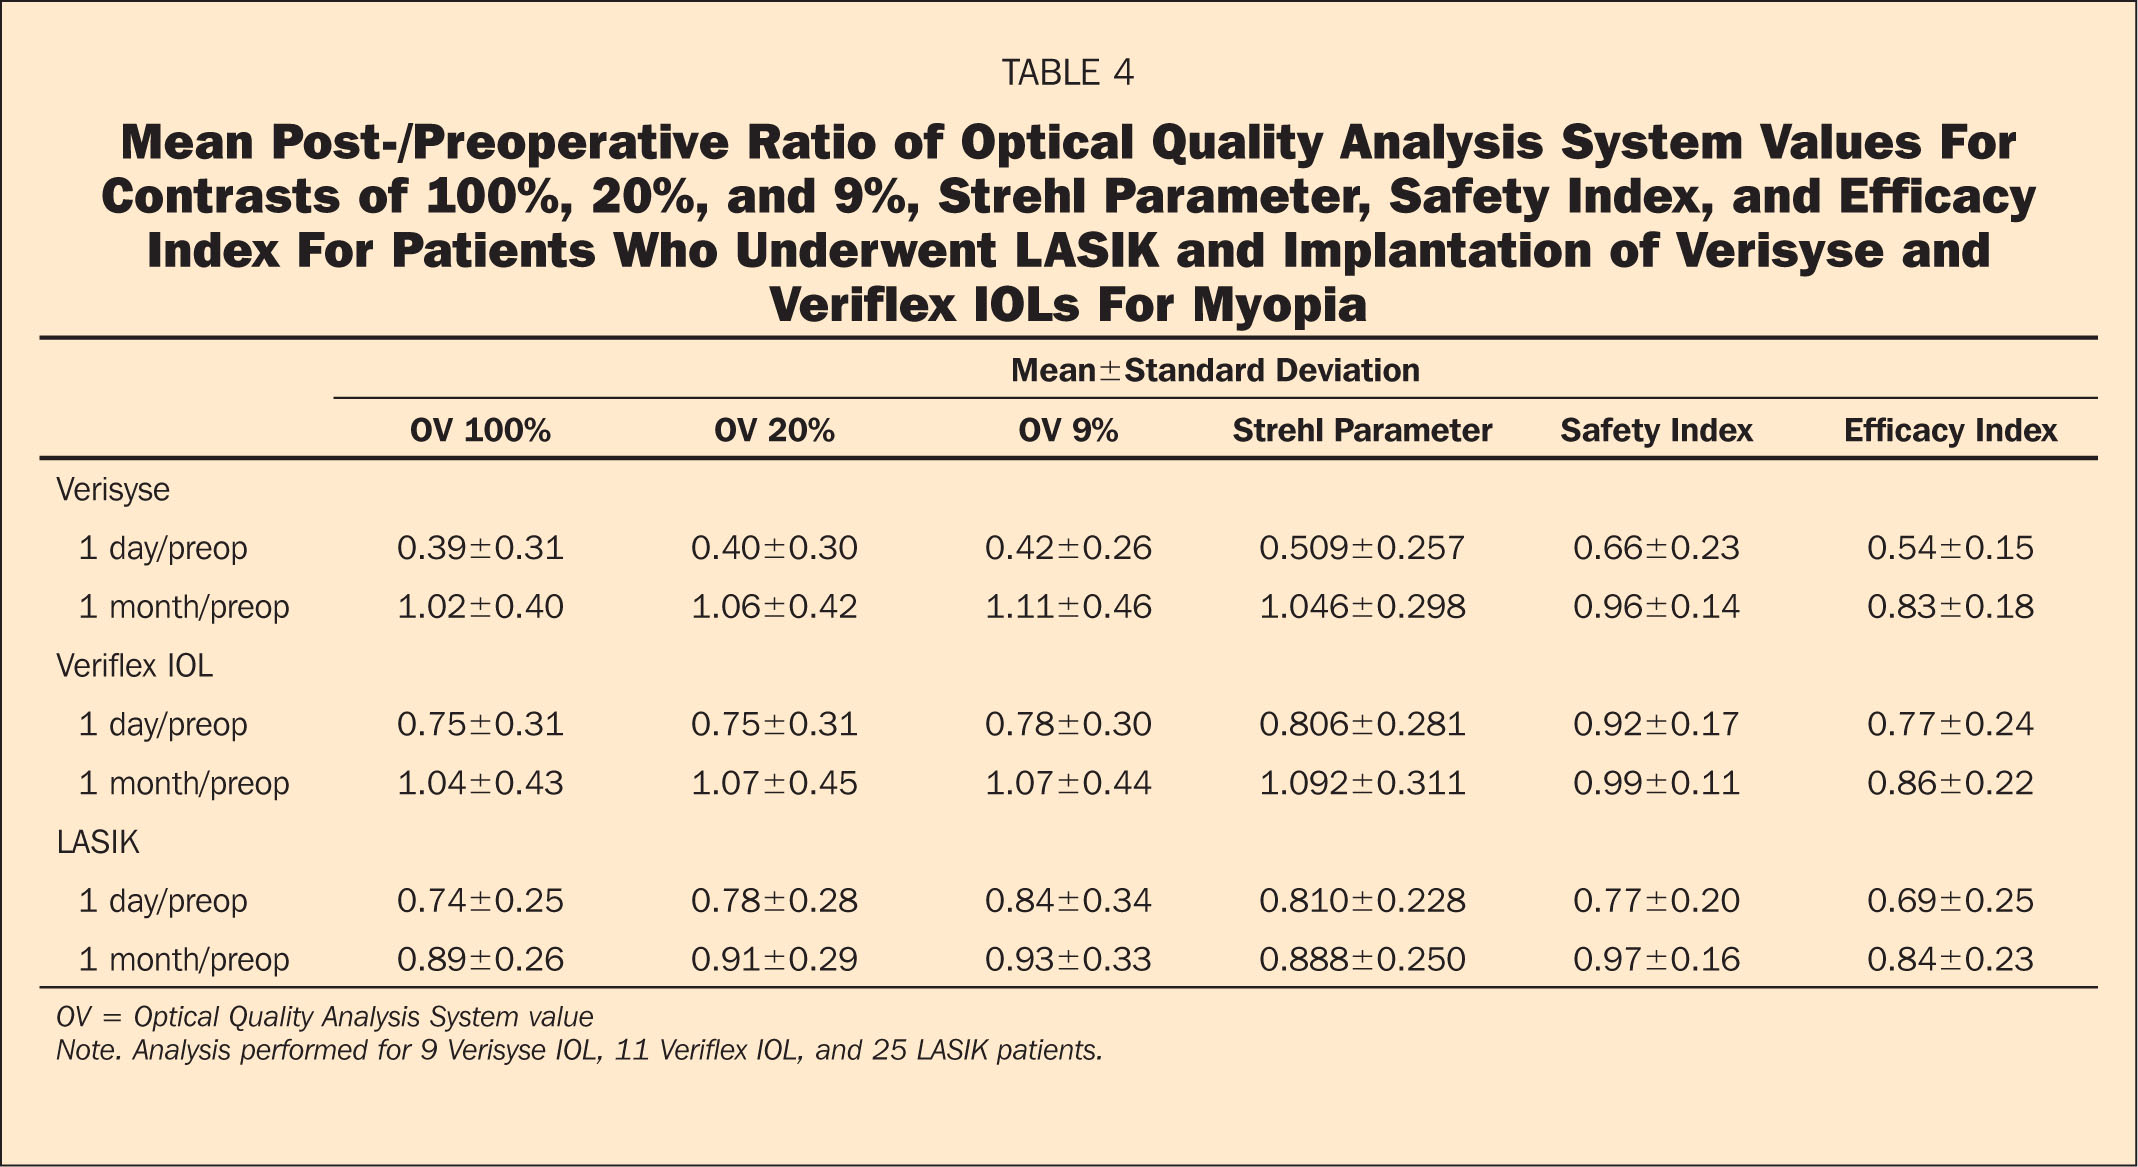 Mean Post-/preoperative Ratio of Optical Quality Analysis System Values for Contrasts of 100%, 20%, and 9%, Strehl Parameter, Safety Index, and Efficacy Index for Patients Who Underwent LASIK and Implantation of Verisyse and Veriflex IOLs for Myopia